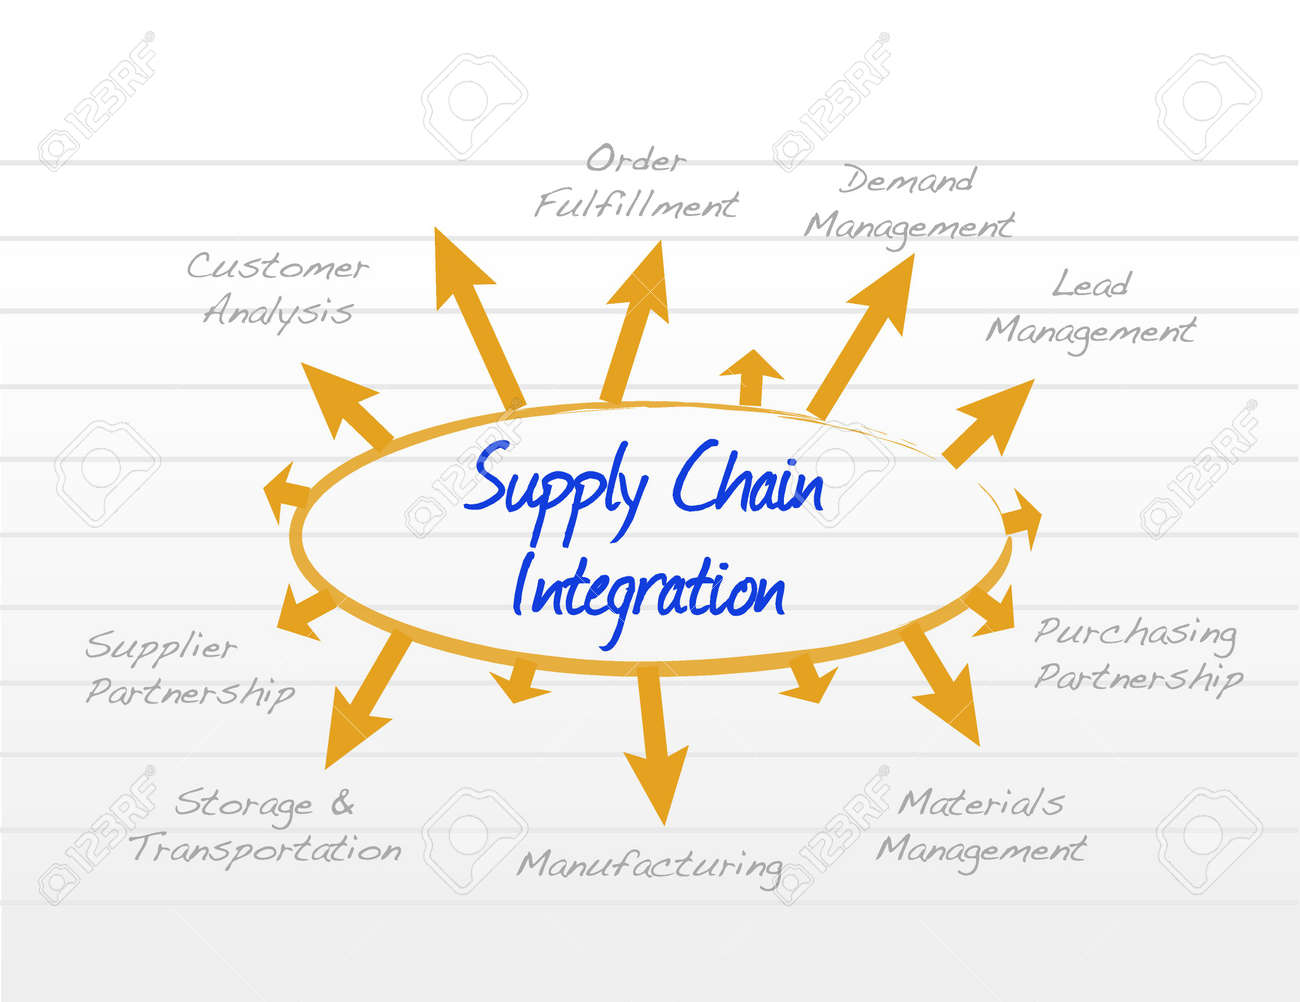 Supply chain integration model diagram illustration design graphic imagens supply chain integration model diagram illustration design graphic ccuart Image collections